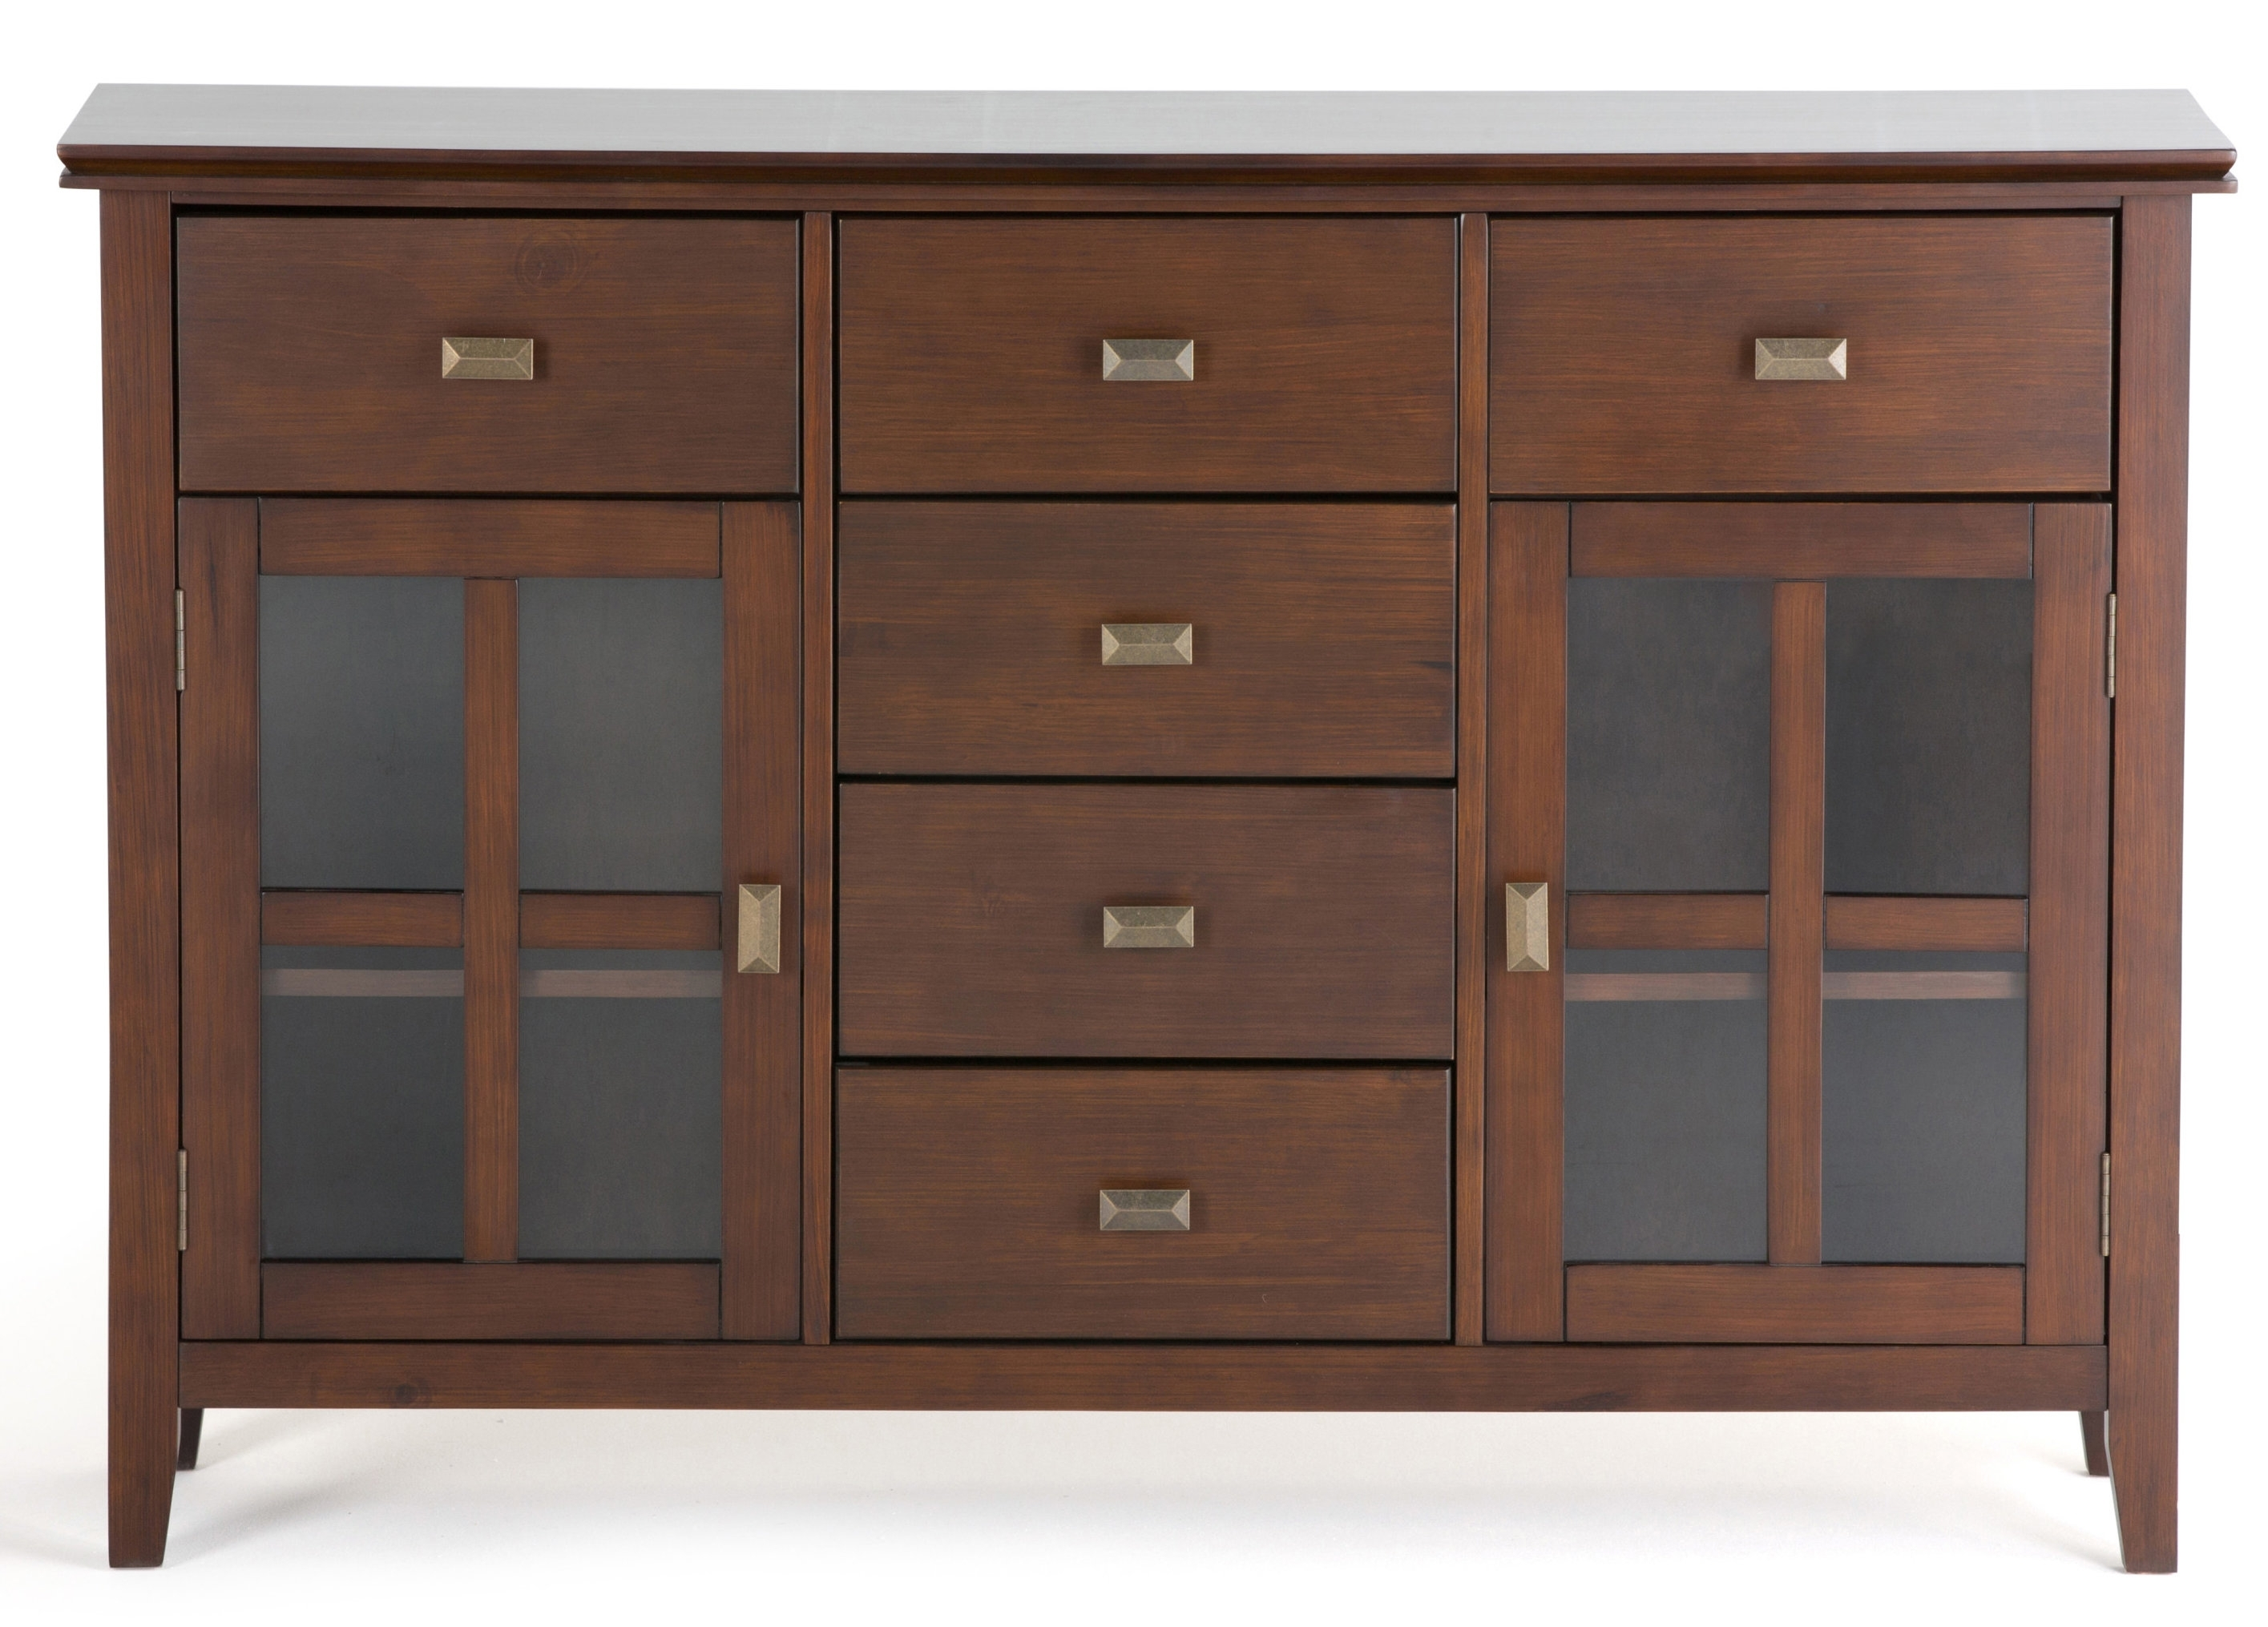 Extra Large Sideboards | Wayfair Throughout Current Vintage Brown Textured Sideboards (View 2 of 20)